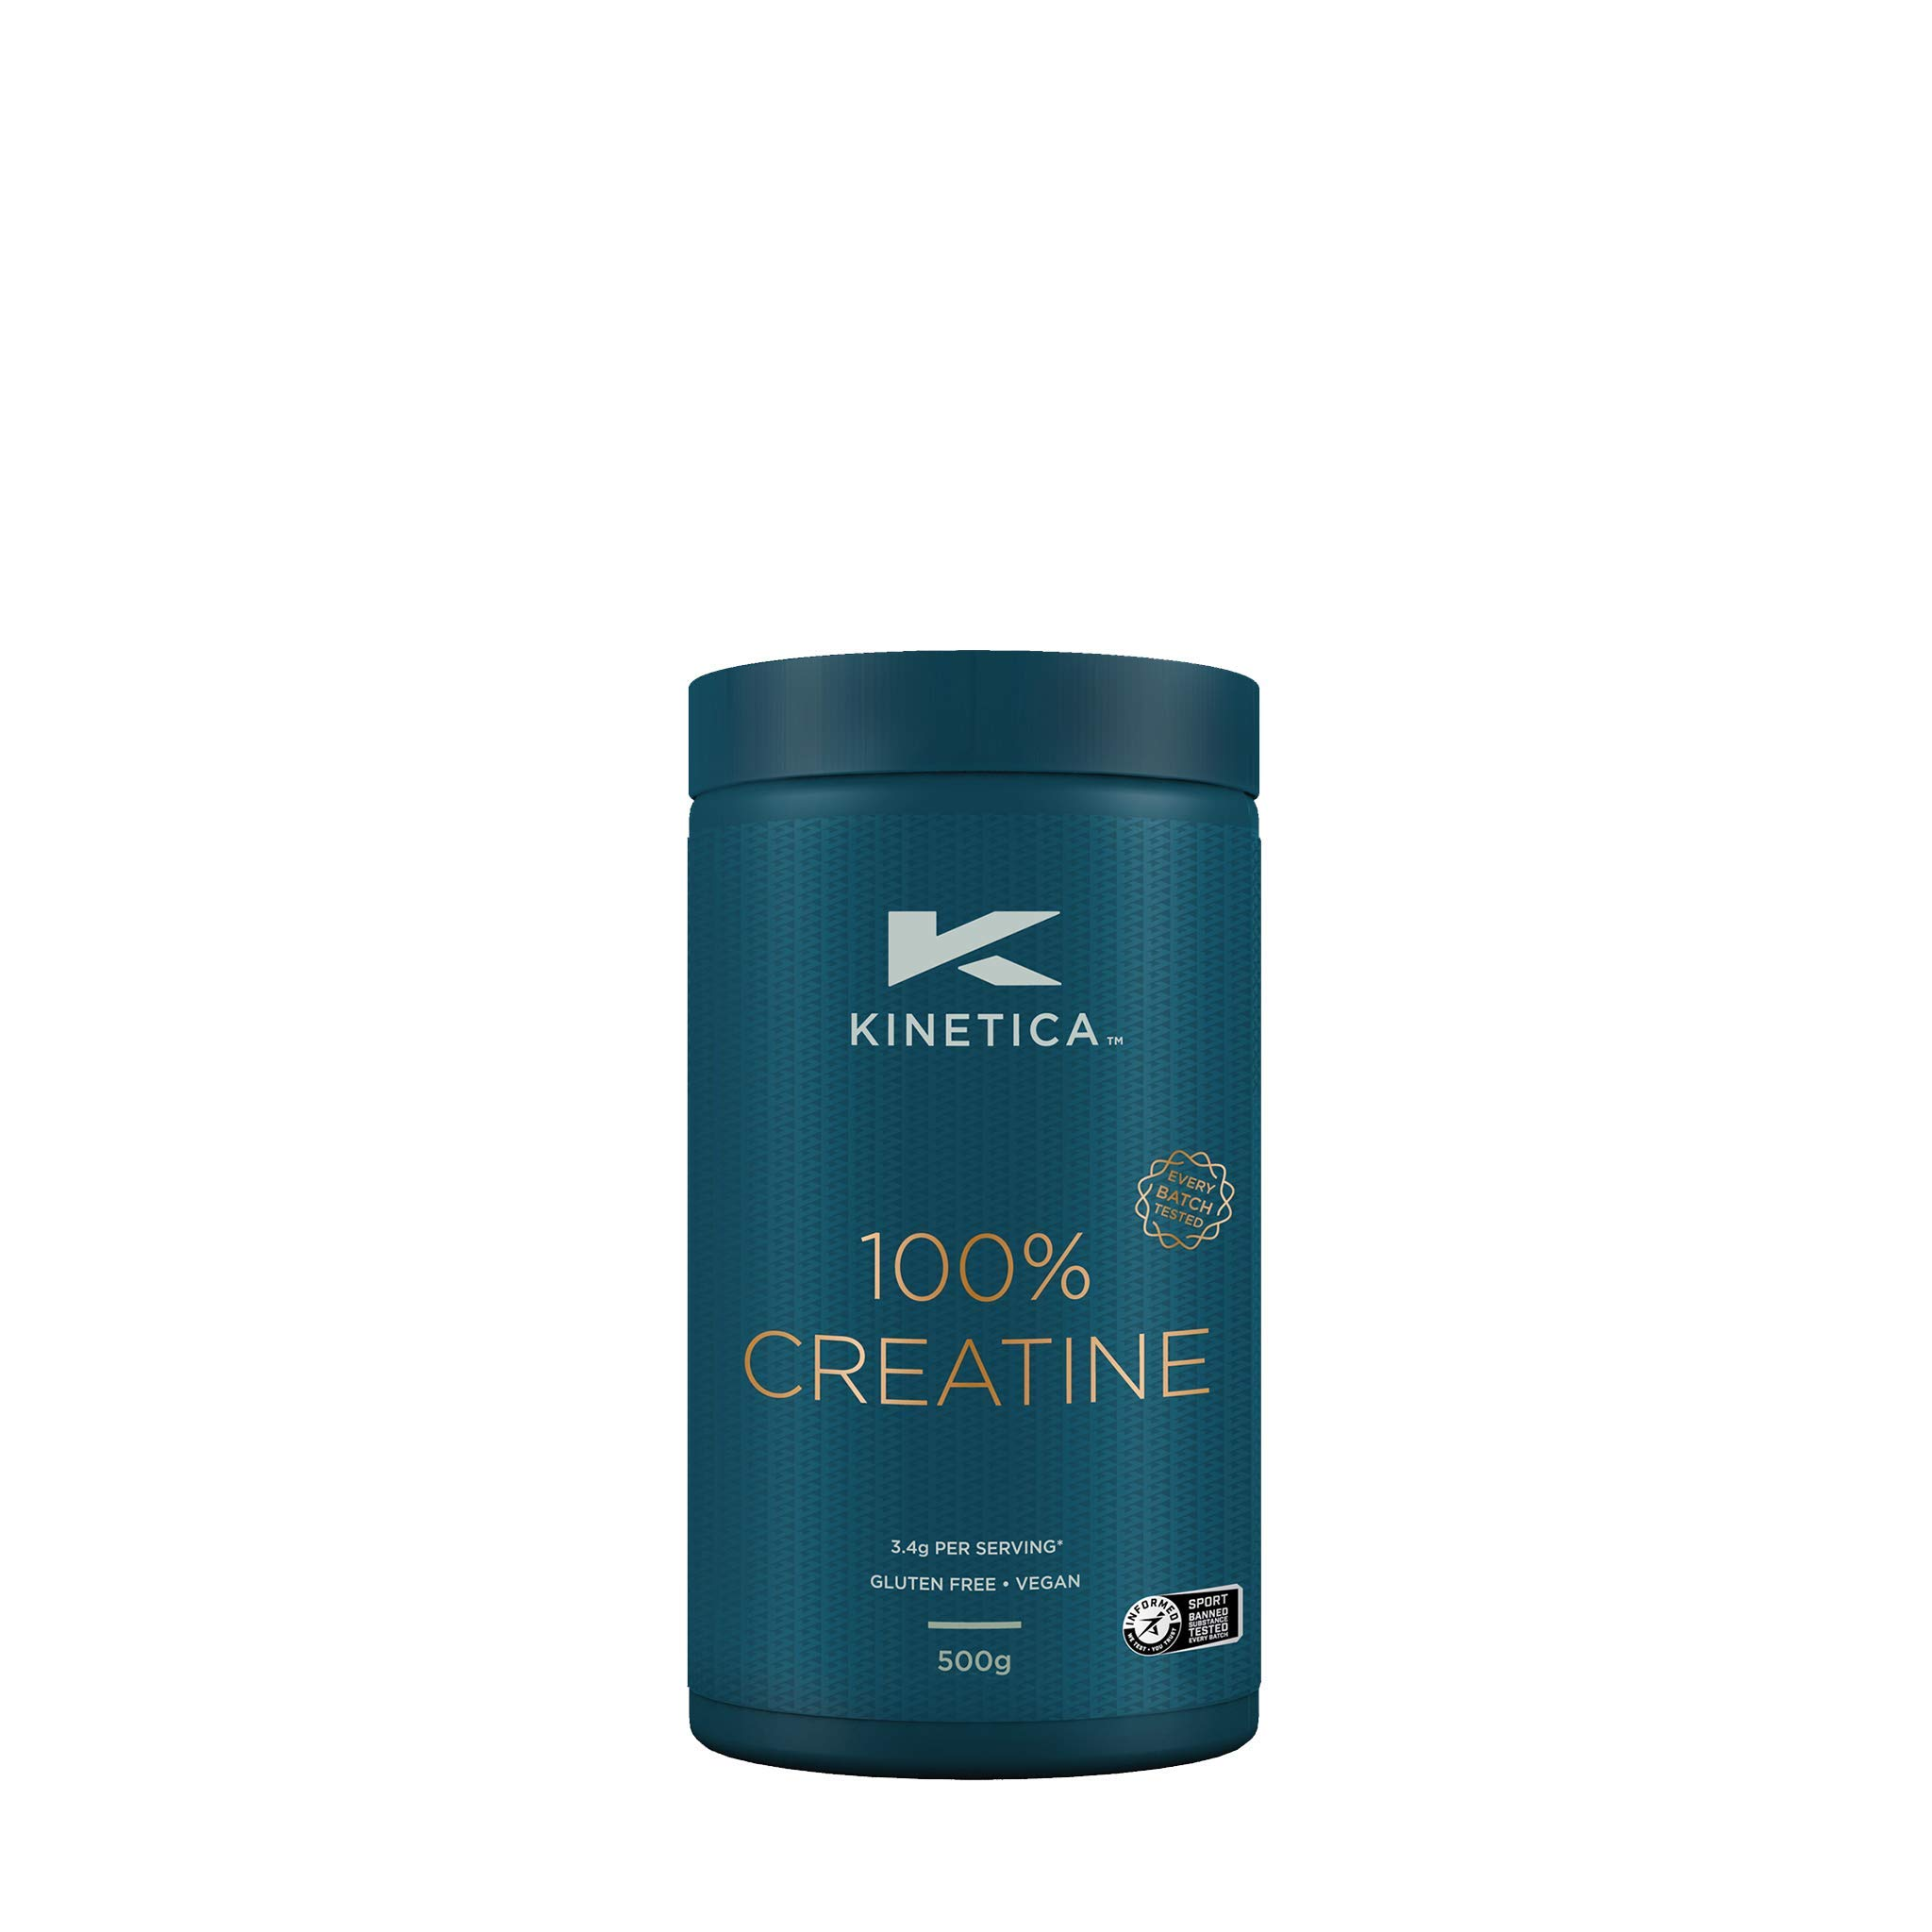 Kinetica 100% Creatine Monohydrate Powder, 147 Servings, 500g, Gluten Free, Suitable for Vegetarians, Unflavoured